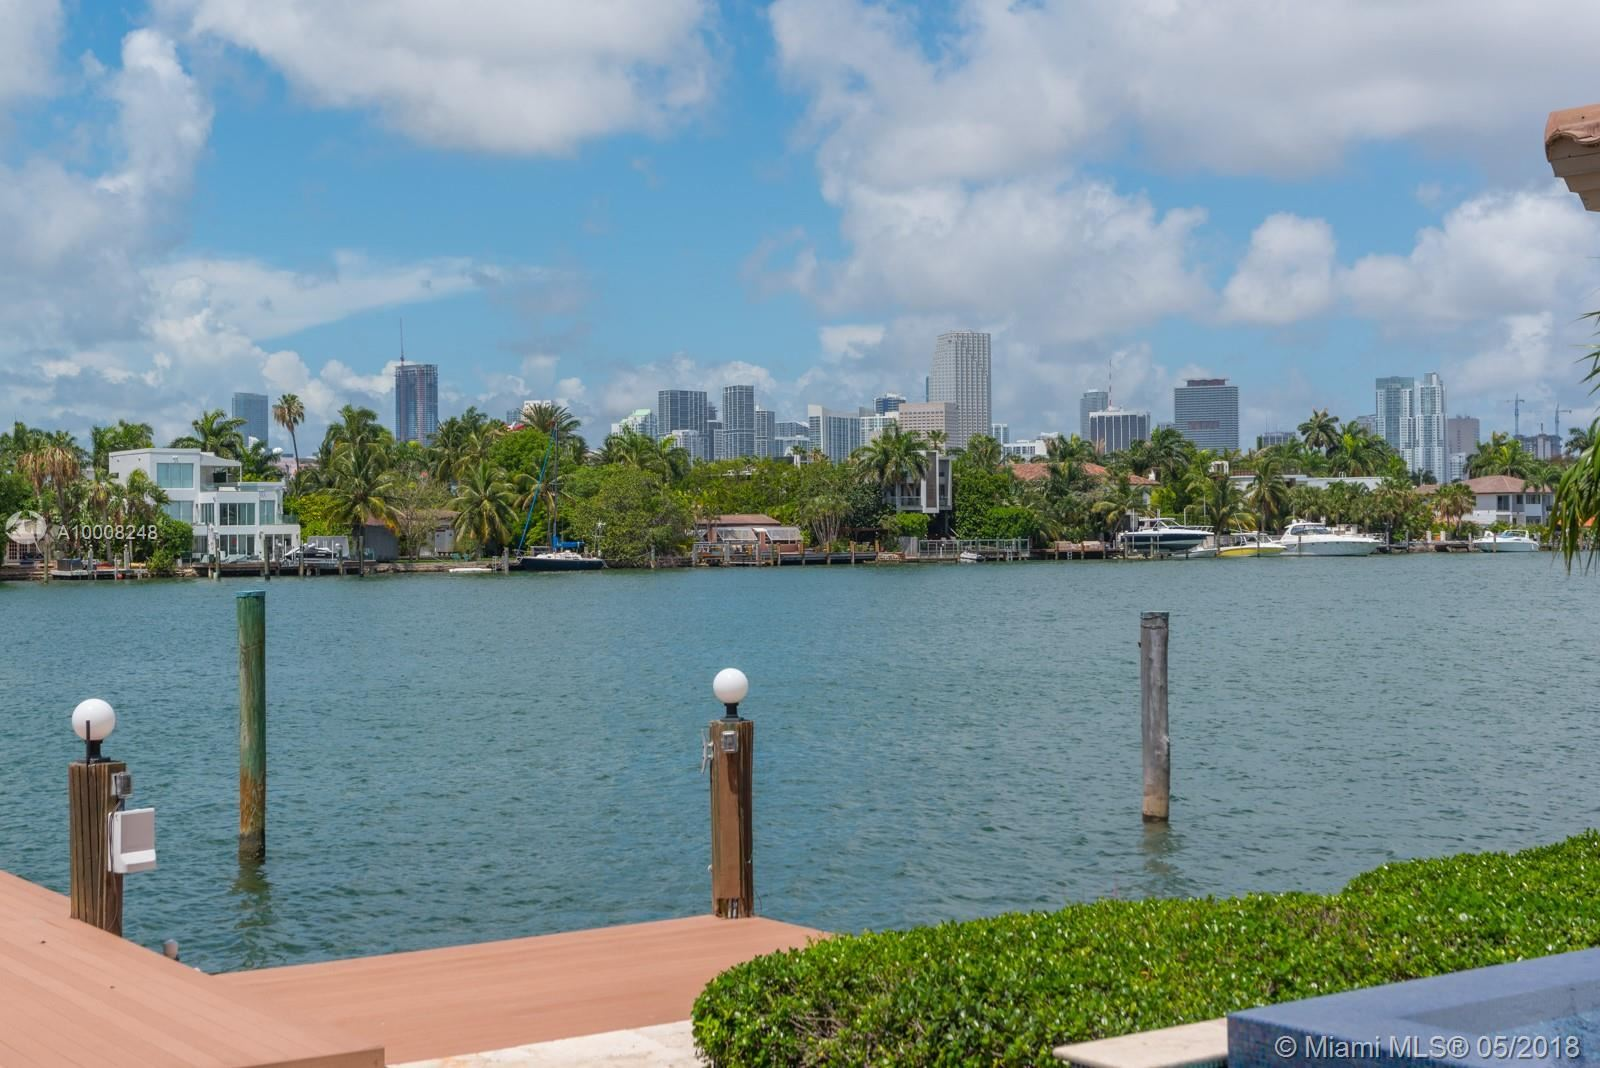 Photo 26 of Listing MLS a10008248 in 280 S HIBISCUS DR Miami Beach FL 33139